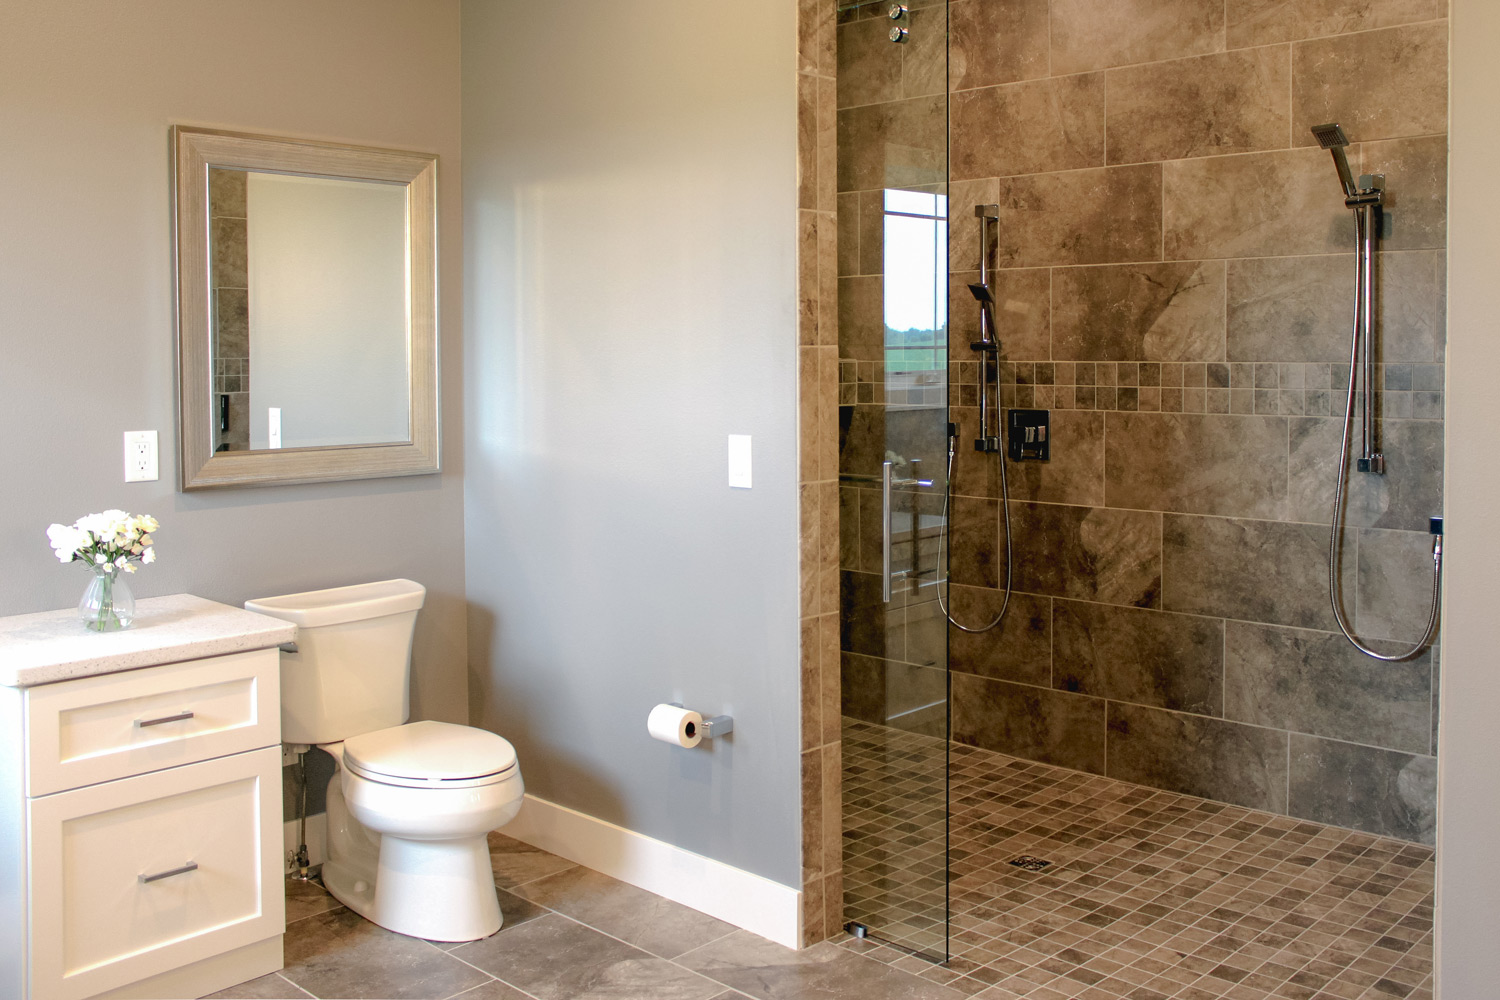 A roll-in shower with a barn-style shower door - This ADA-accessible bathroom incorporates universal design for the differing abilities of both the husband and wife. A barn door is used for the shower door of the zero-entry shower.